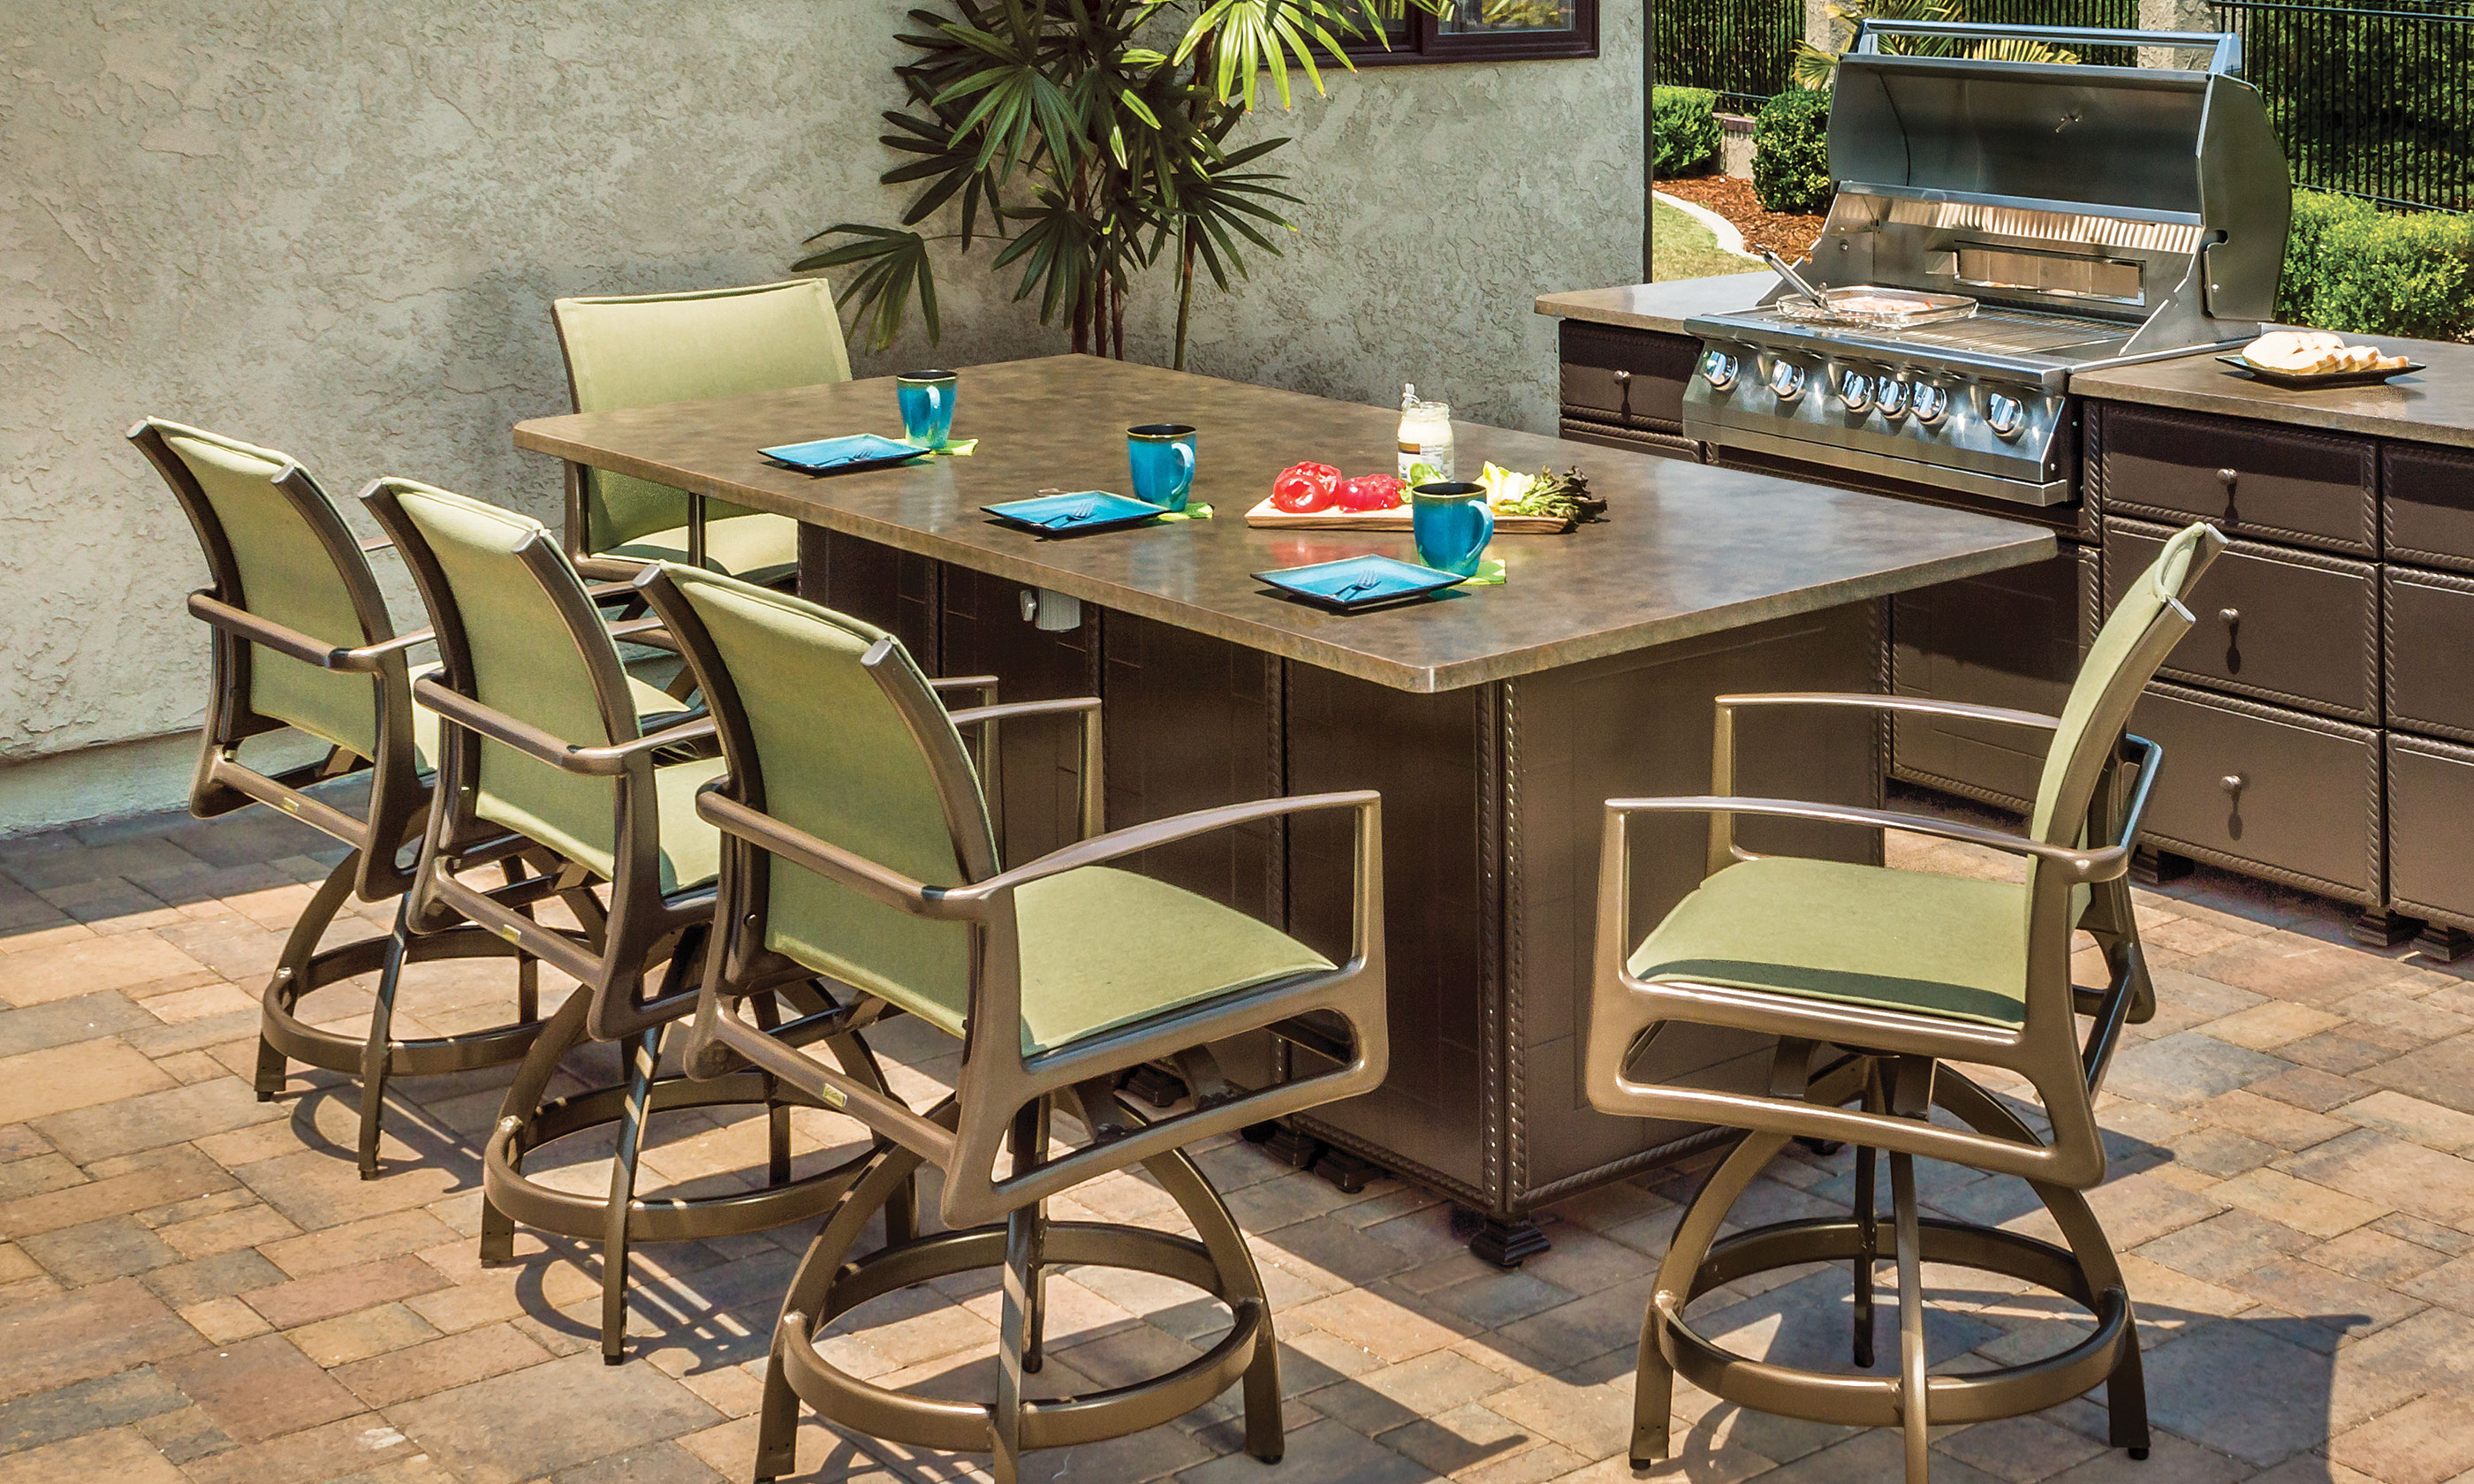 Outdoor Furniture & Kitchens Gensun